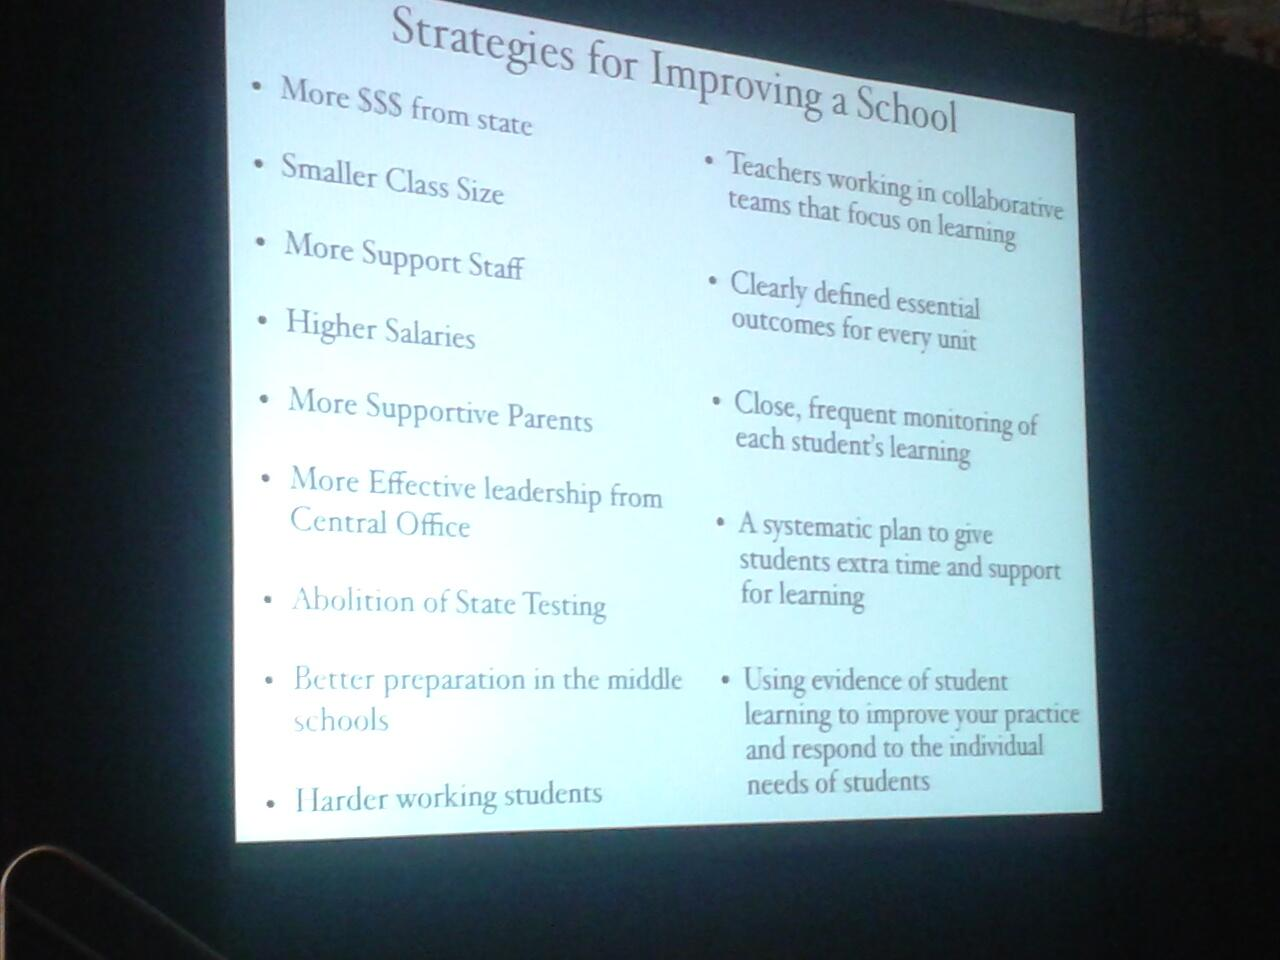 RT @teachhill: Strategies for Improving a School....which side impacts student learning? @SolutionTree #atplc http://t.co/zmhDFJrx07